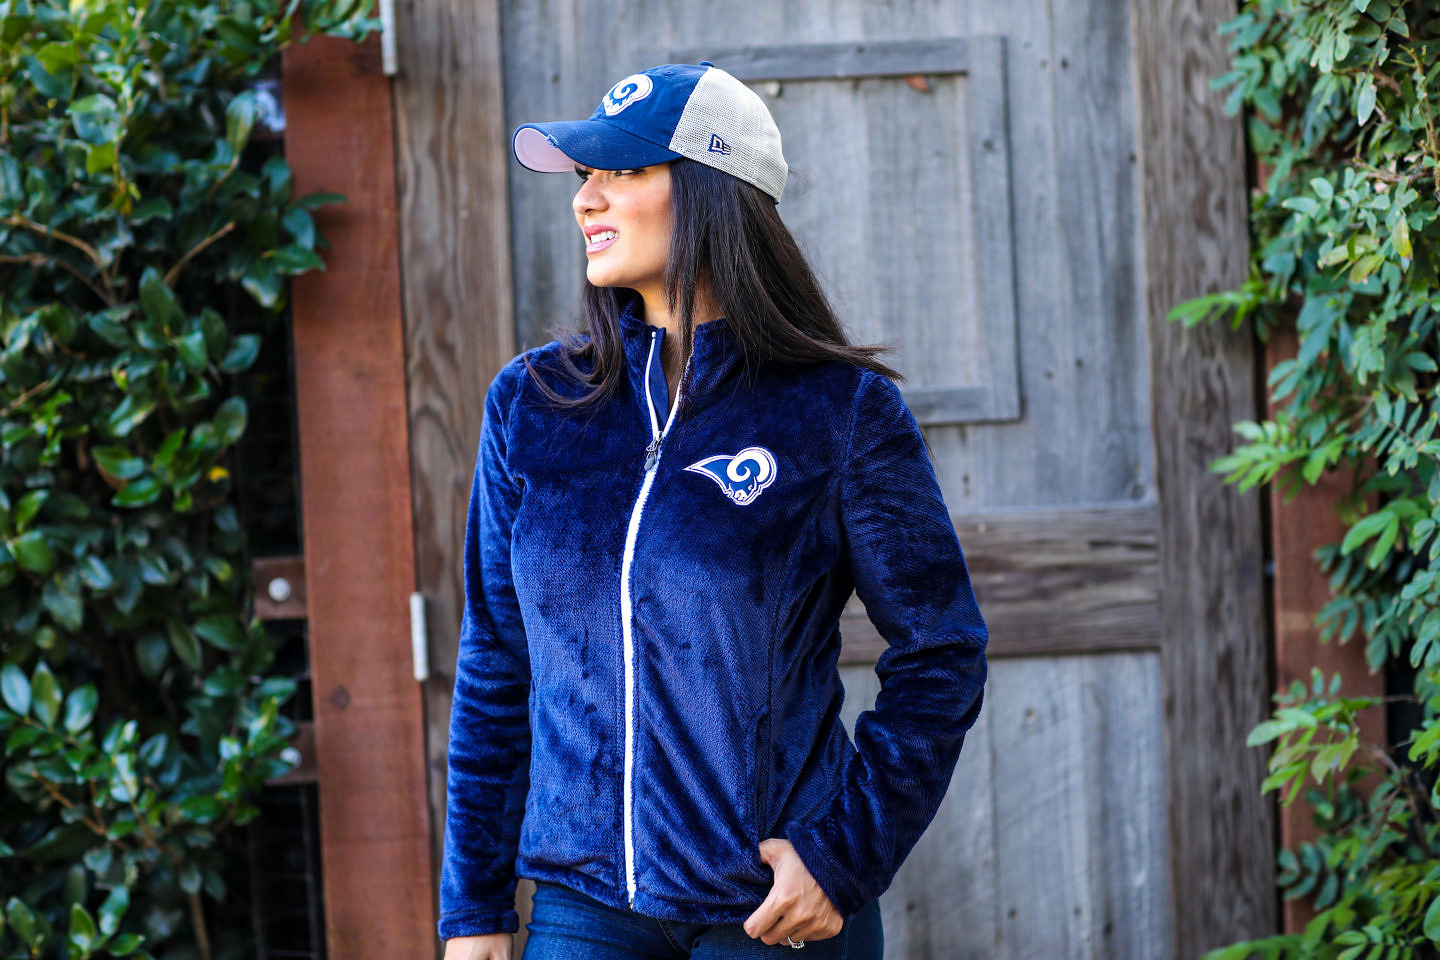 Know someone who is a MAJOR football lover? Orange County Blogger Glamorous Versatility is sharing her favorite NFL apparel ideas to give to any football lover this playoff season. Click to see them here!